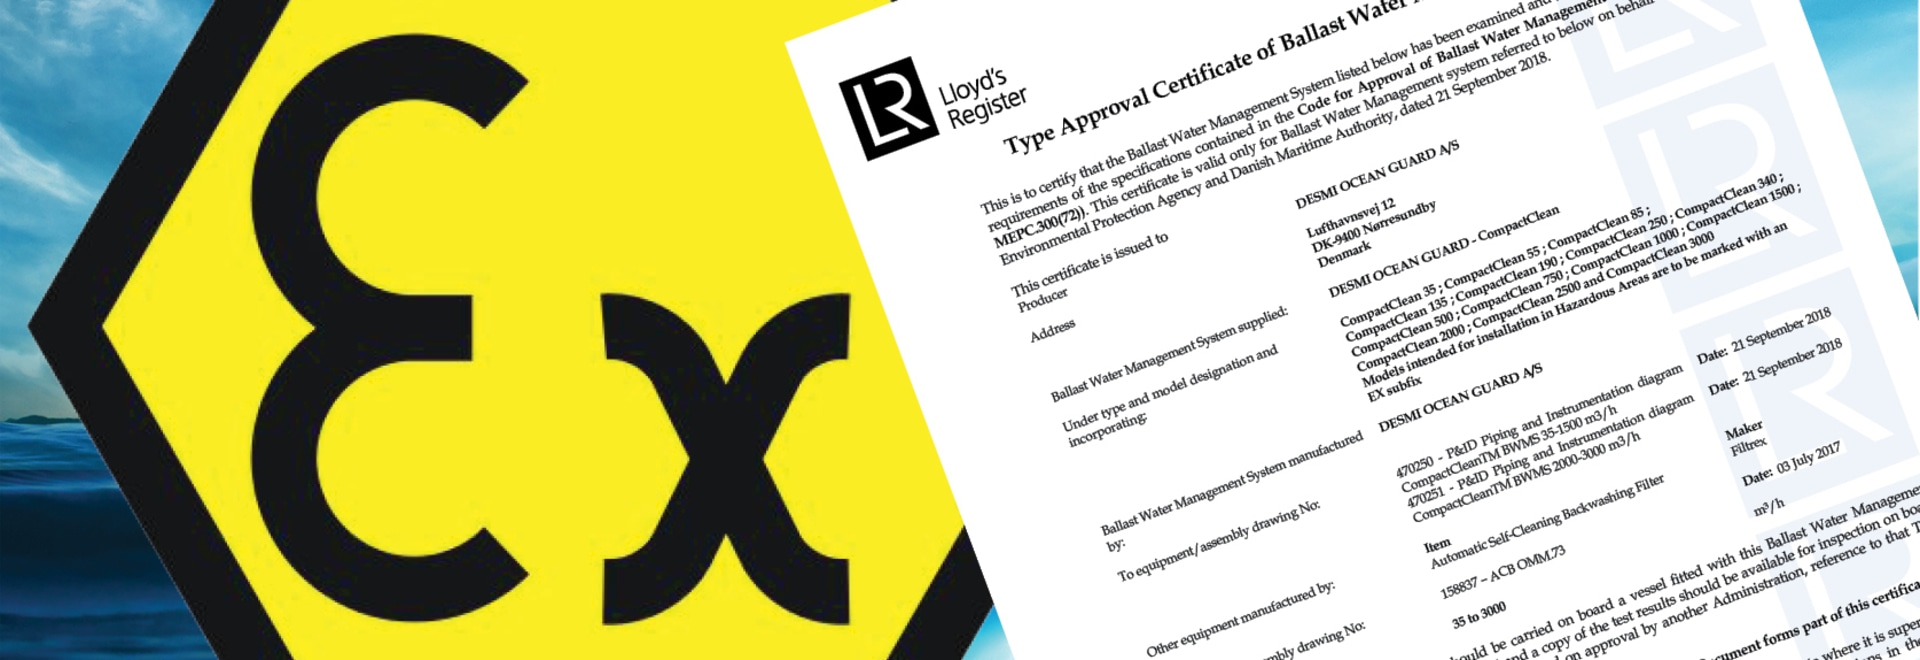 CompactClean IMO Certificate with EX